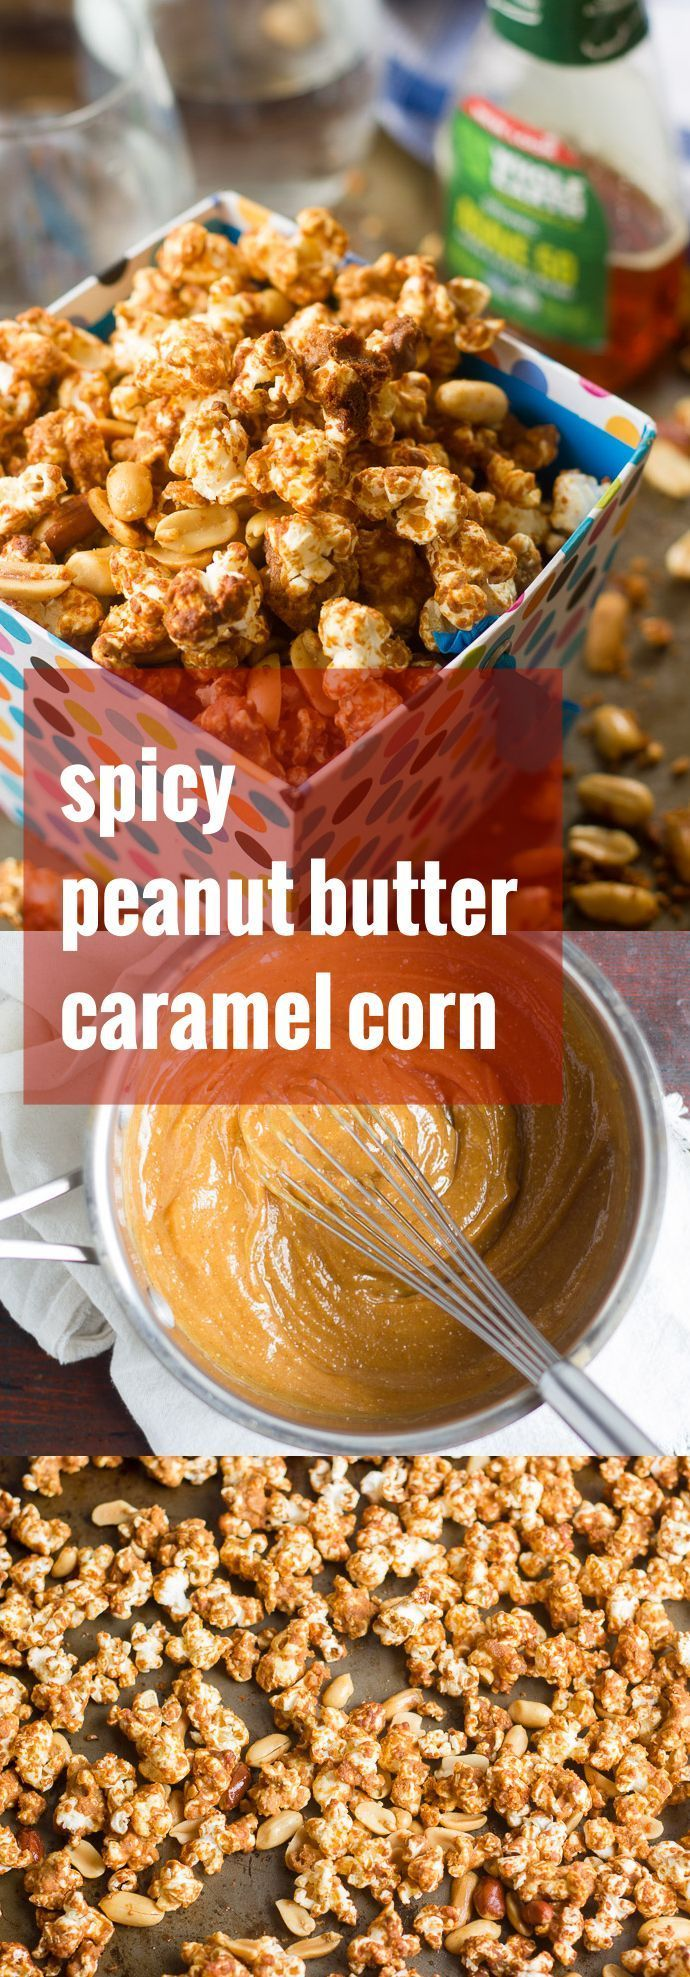 This addictive caramel corn is drenched in a peanut butter coating that's rich and nutty, perfectly sweet, and just a tad spicy!